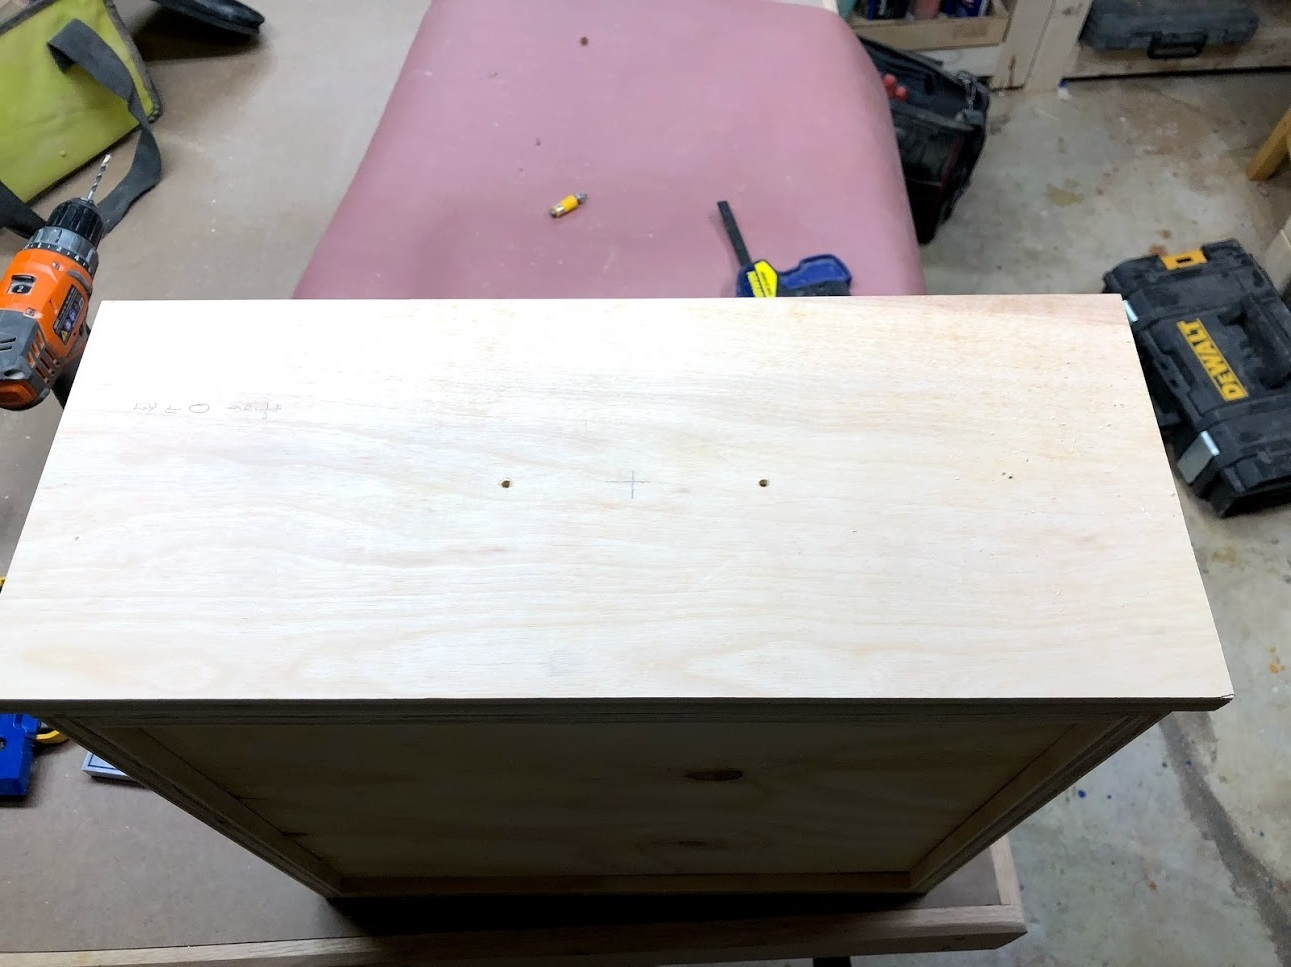 Holes predrilled, all that was left was to secured the pulls with 2 screws from the inside of the drawer.